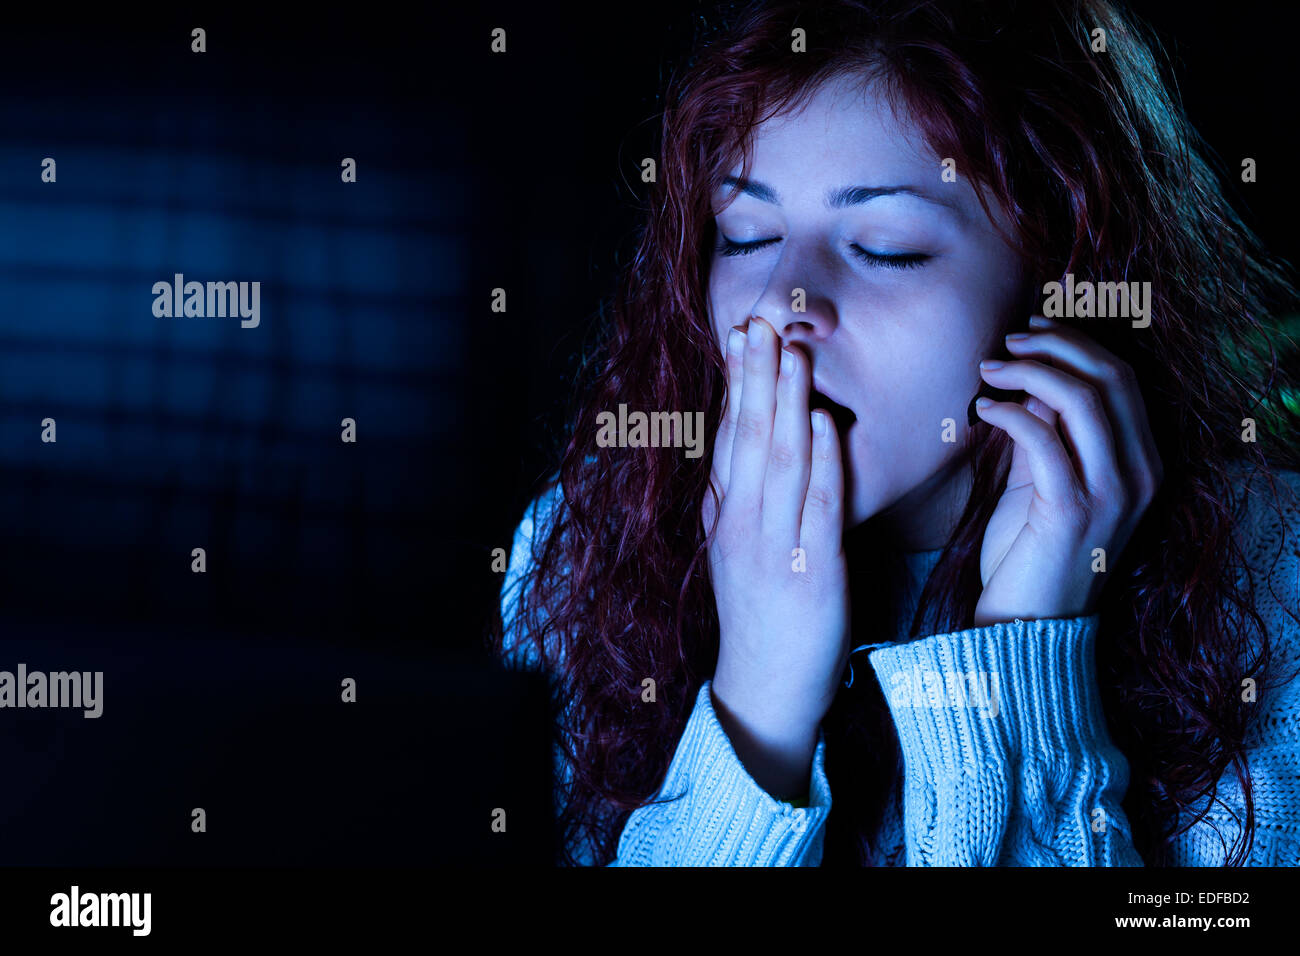 Yawning Woman Working on a Computer with Headset at Night Stock Photo